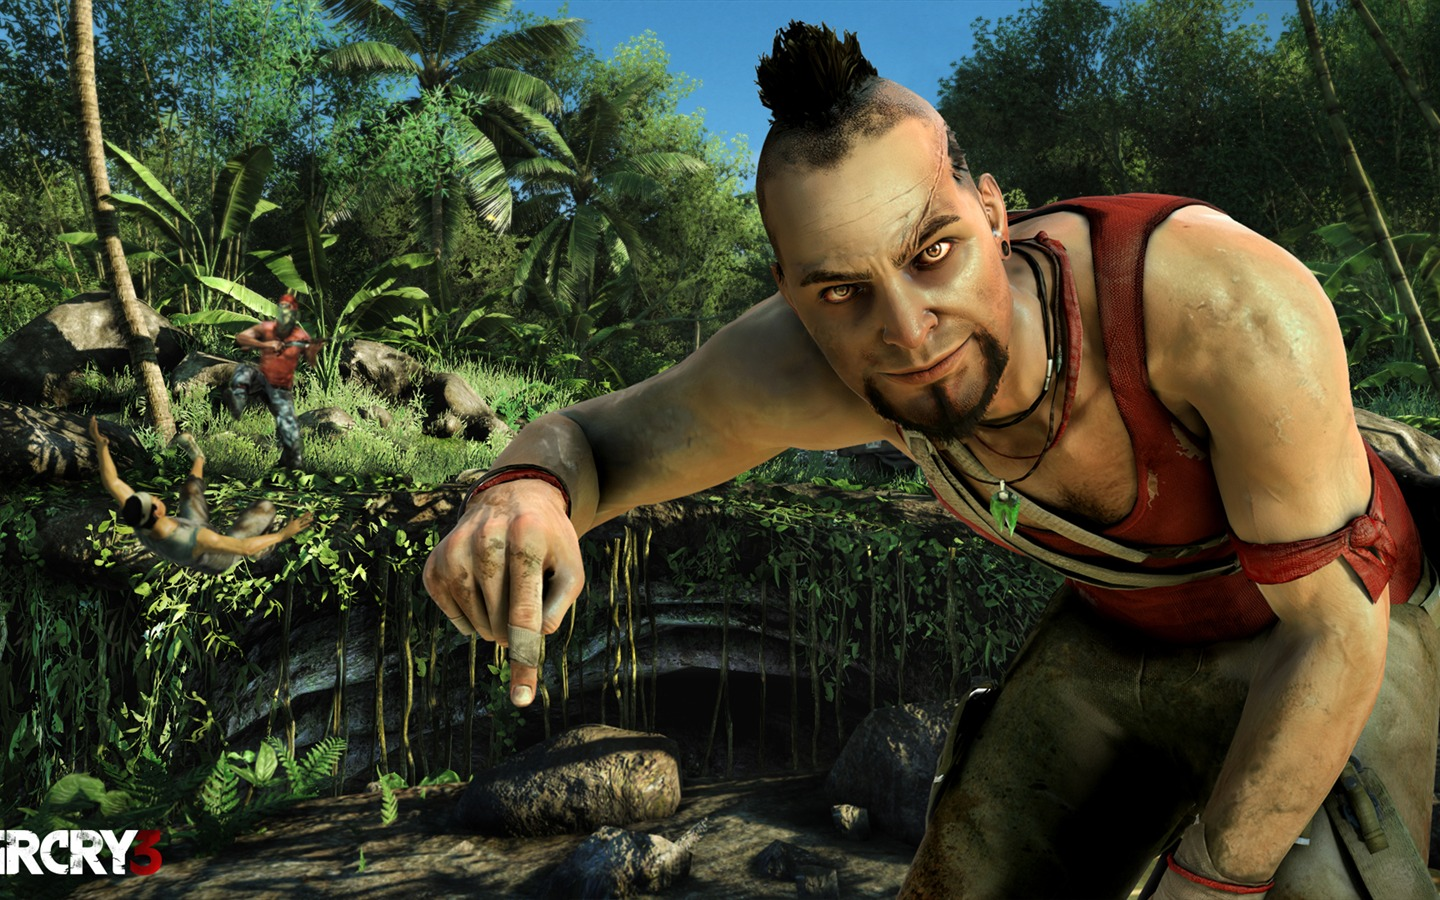 Far Cry 3 Hd Wallpapers 4 1440x900 Wallpaper Download Far Cry